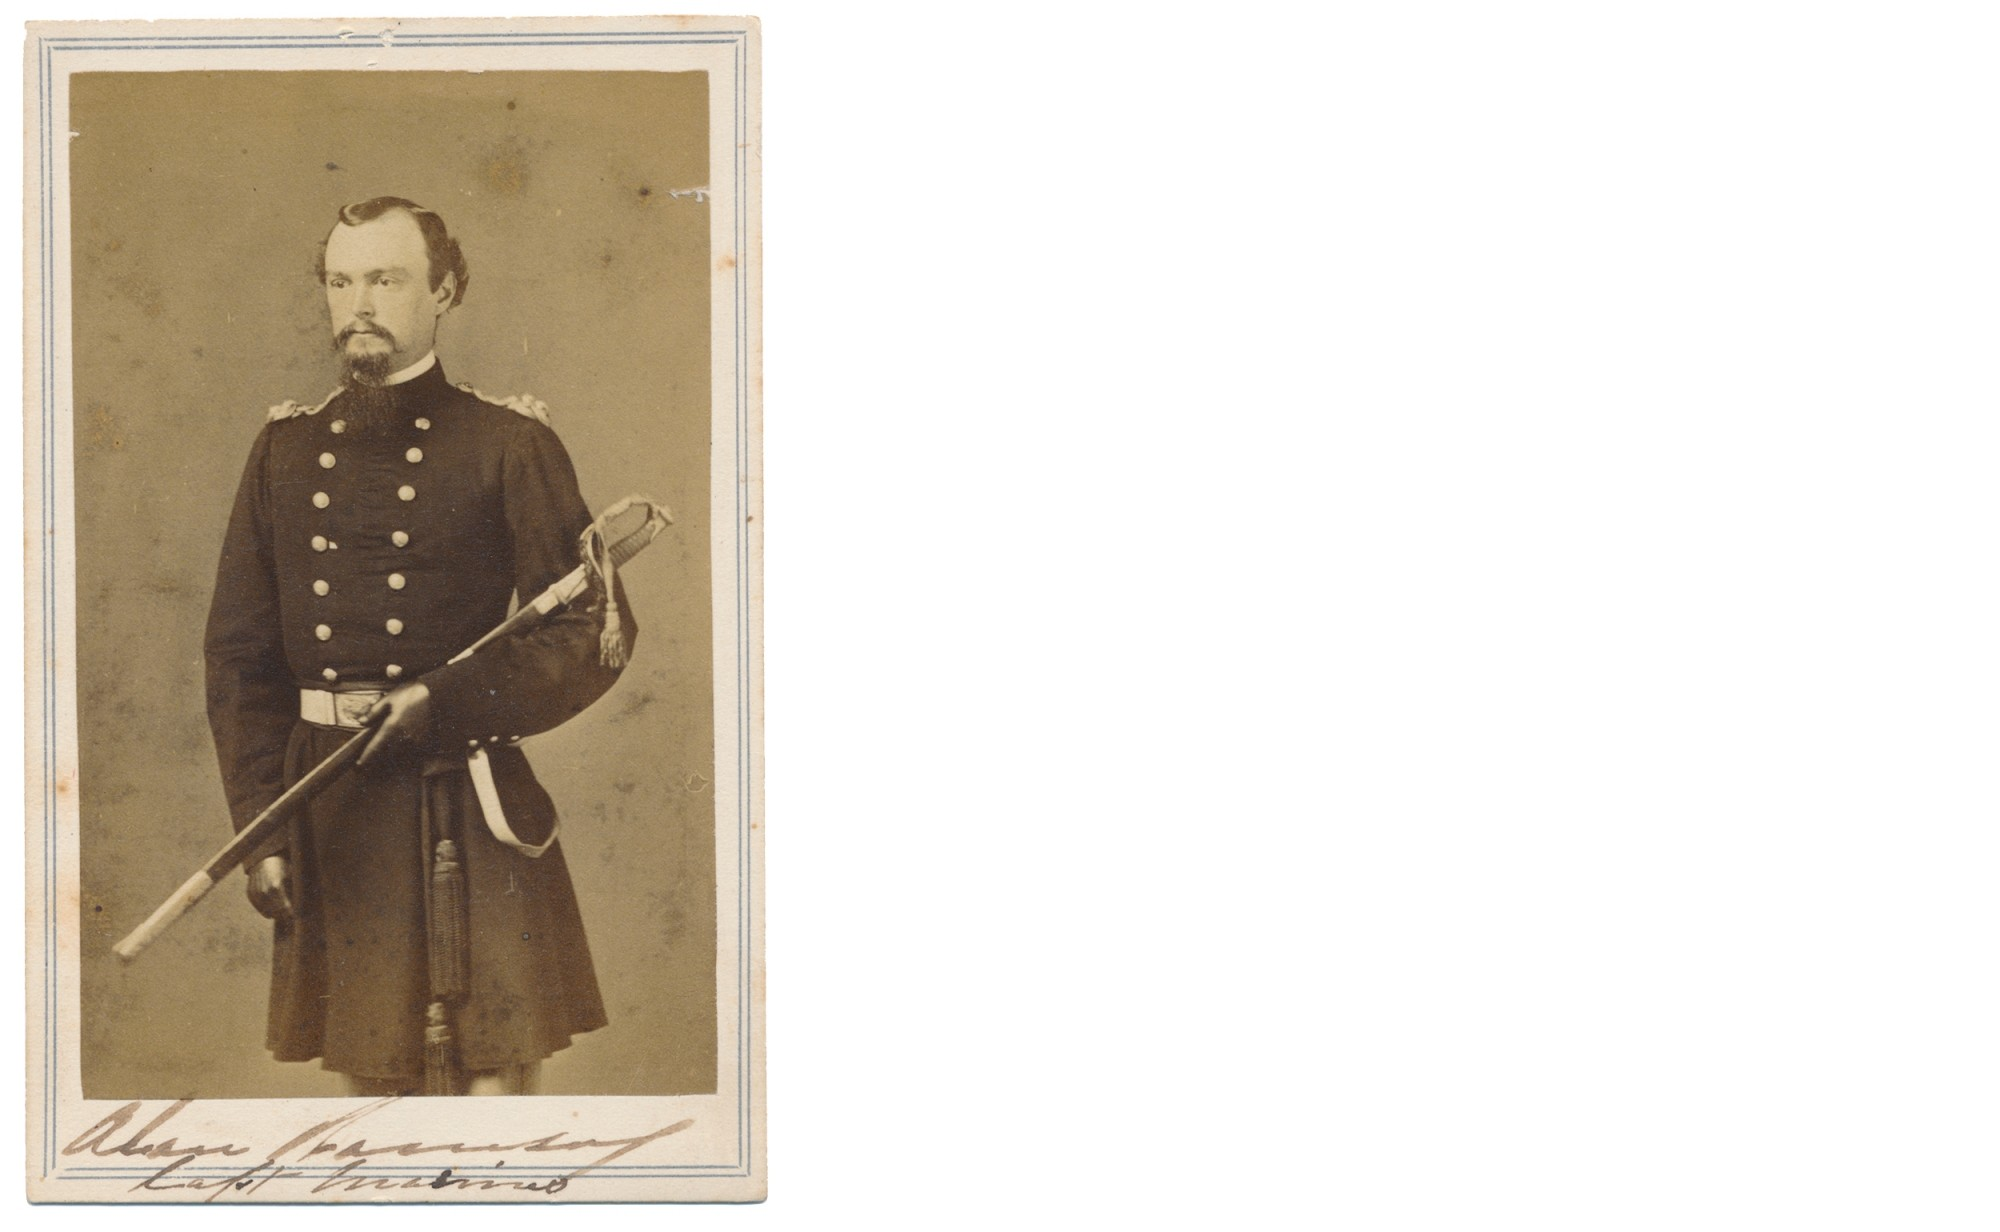 CIVIL WAR MARINE CORPS CAPTAIN ALAN RAMSAY WAR-DATE SIGNED CDV; WITNESS TO LINCOLN'S GETTYSBURG ADDRESS